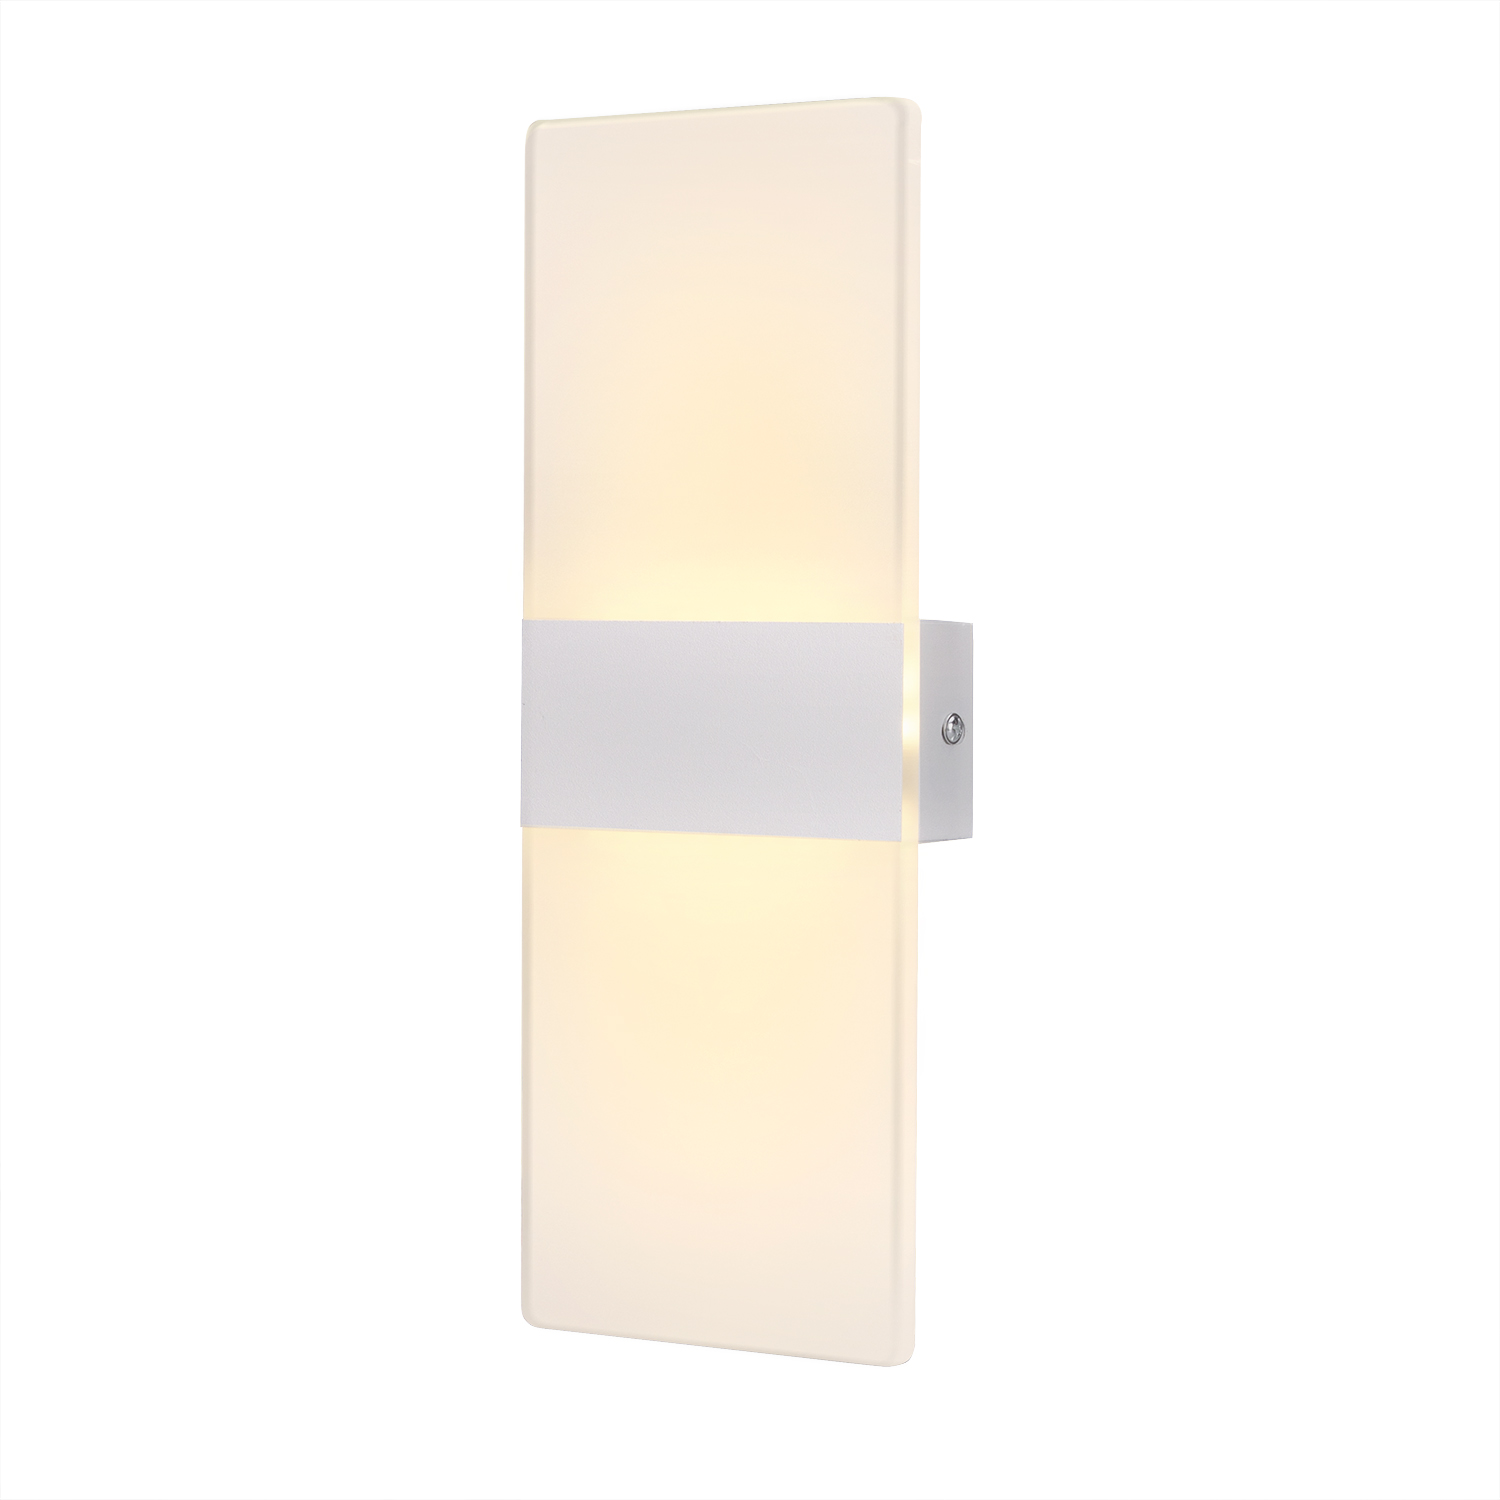 AGPTEK LED Wall Sconce 6W Bright Acrylic Night Light for Bedroom, Balcony, Hallway, Stairway ...